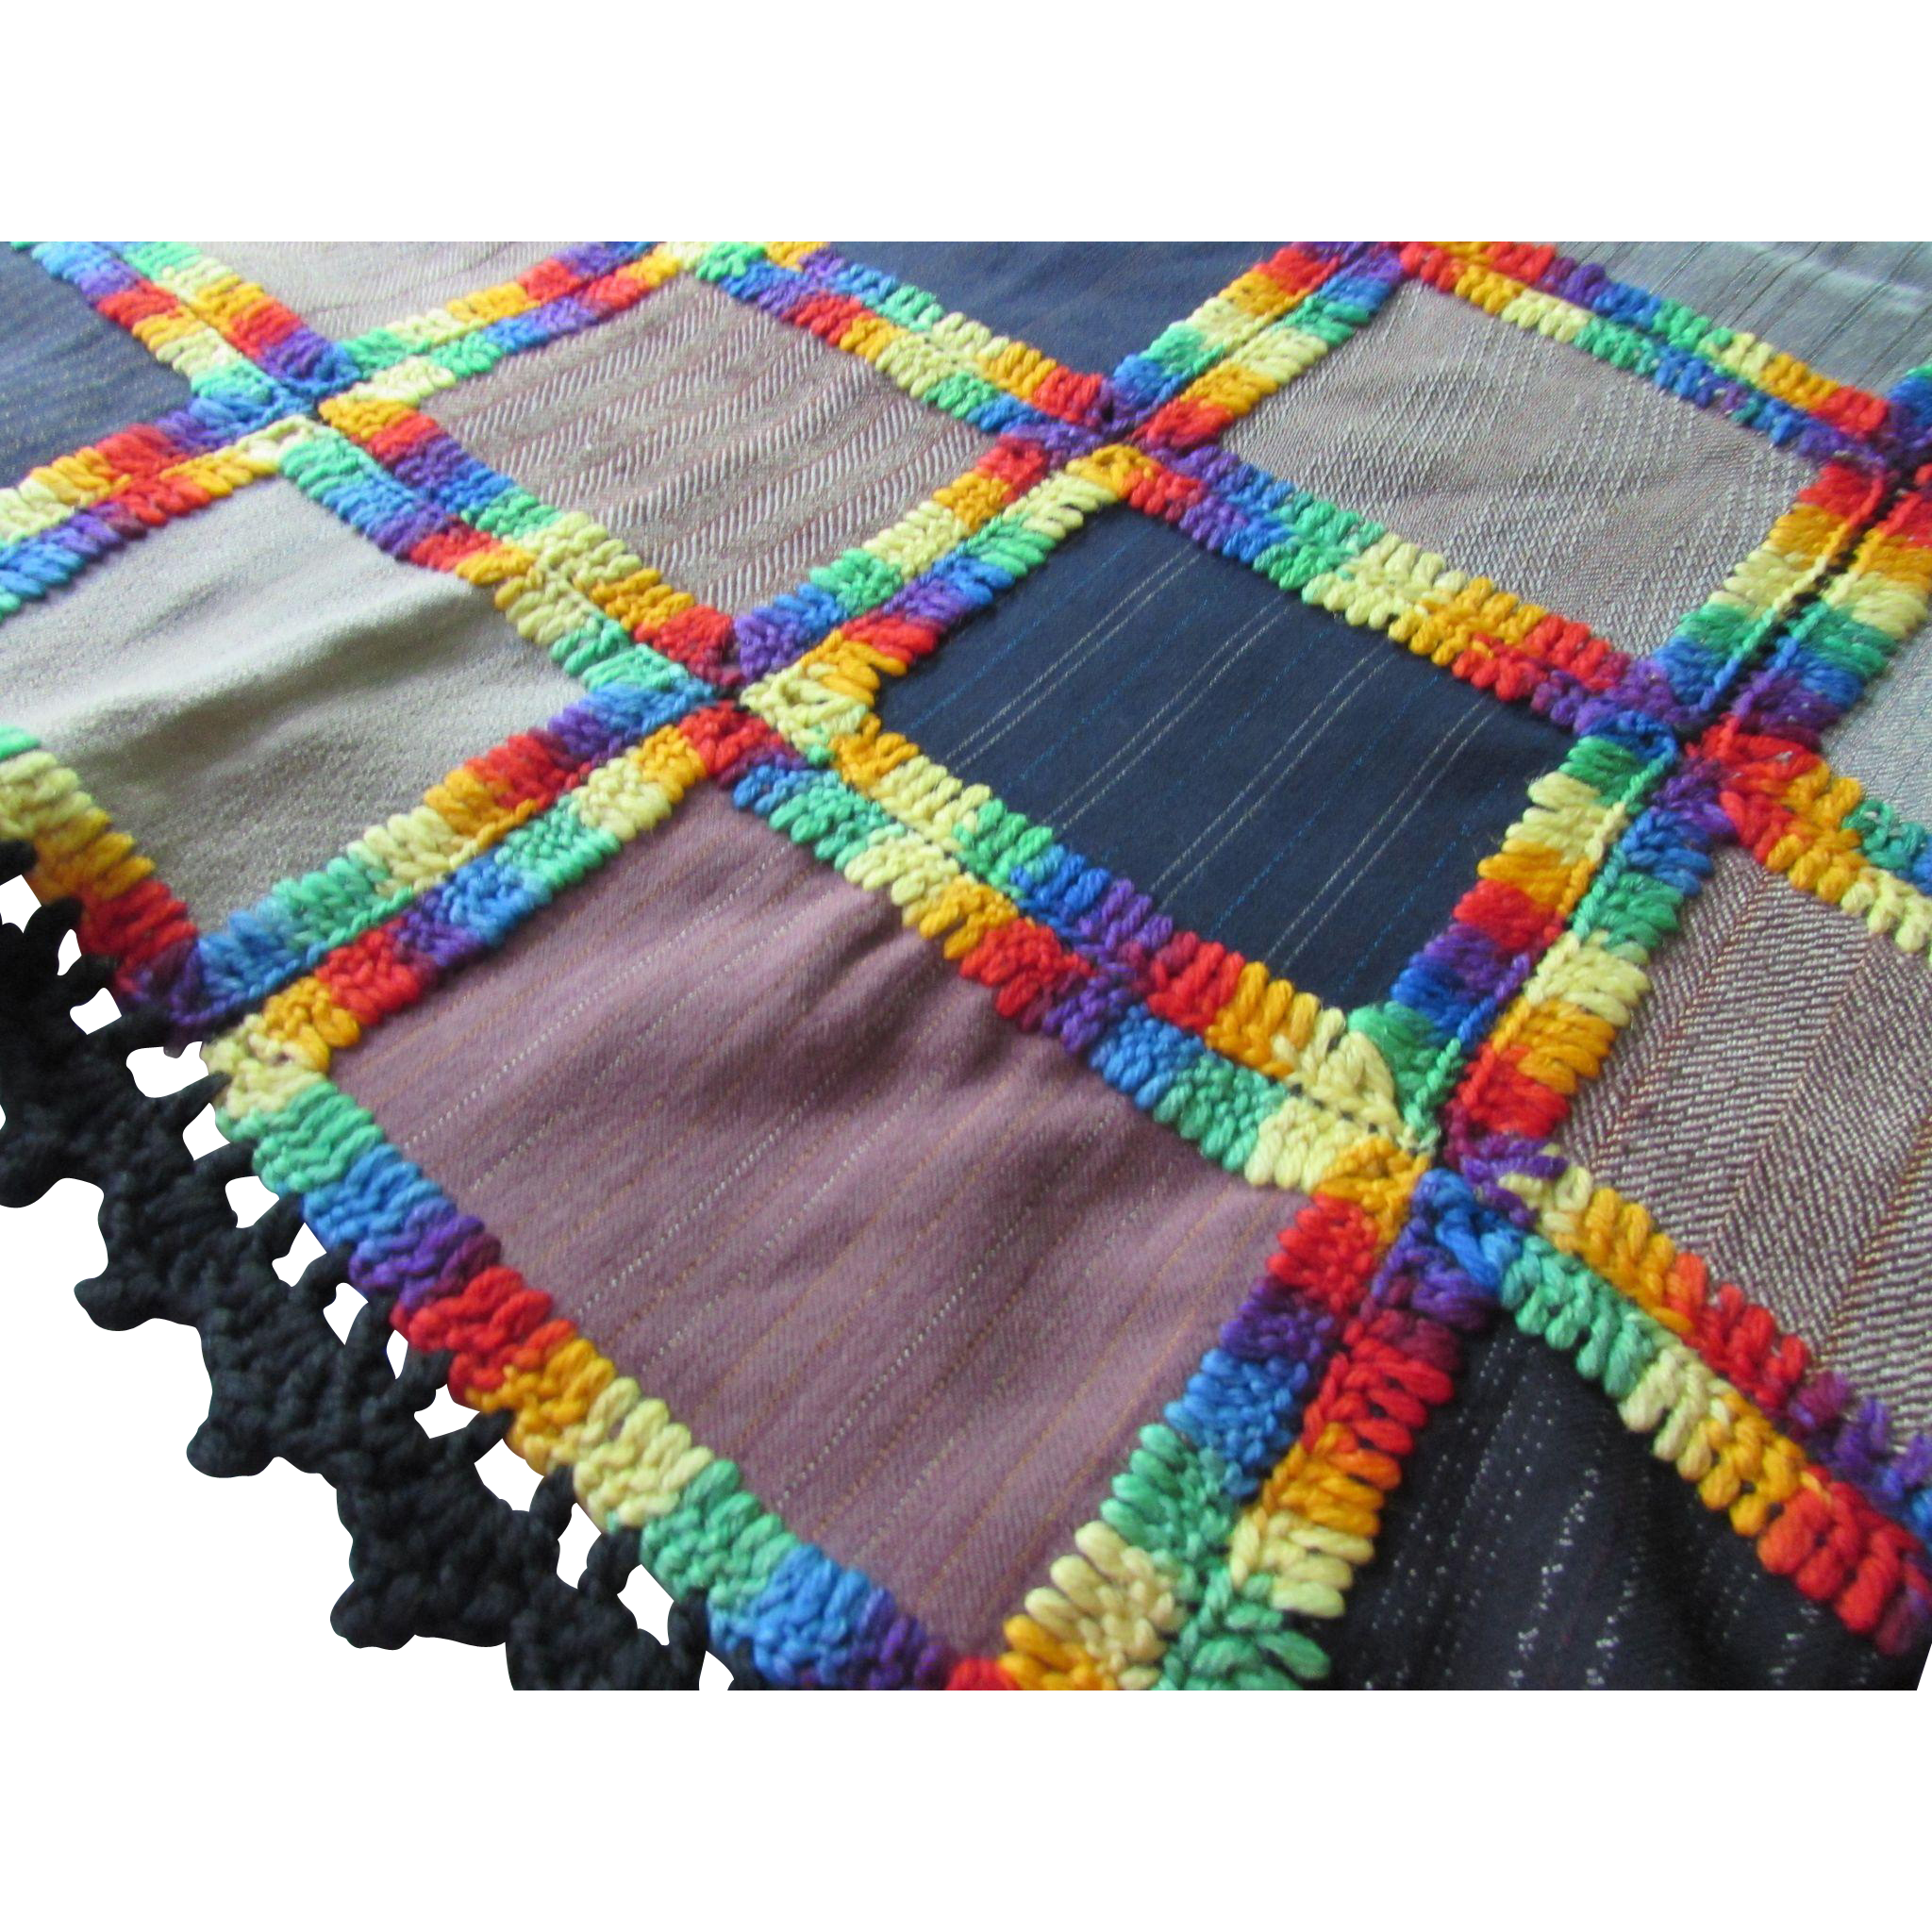 Patchwork Hand Made Bed Cover in Wool Suiting Blocks and Yarn Edging